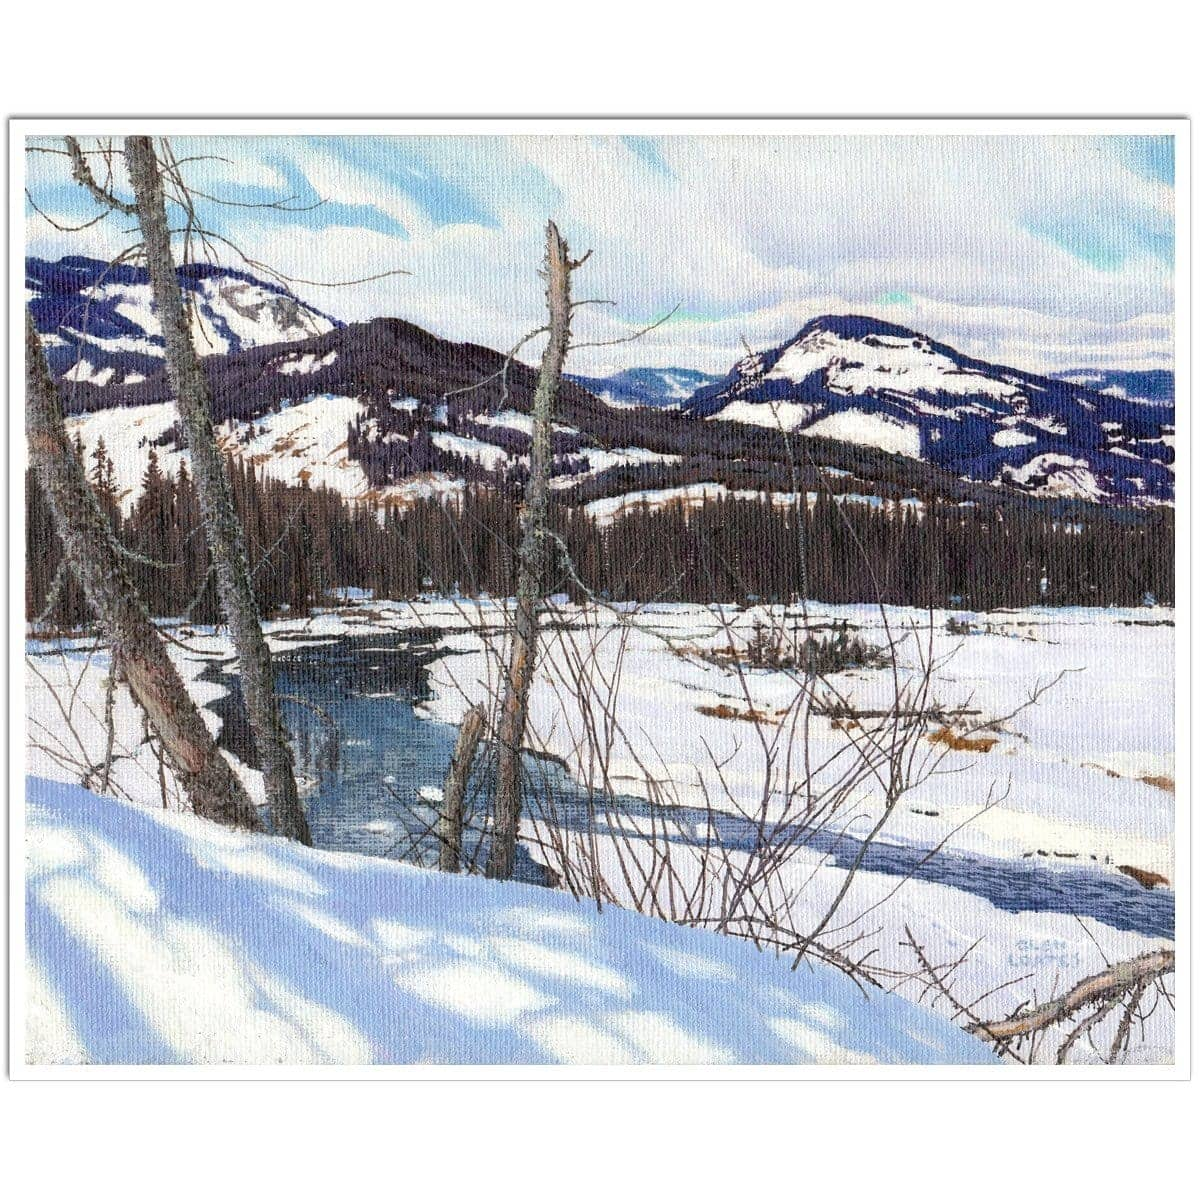 Snow-covered Landscape - Art Print by Glen Loates from the Glen Loates Store